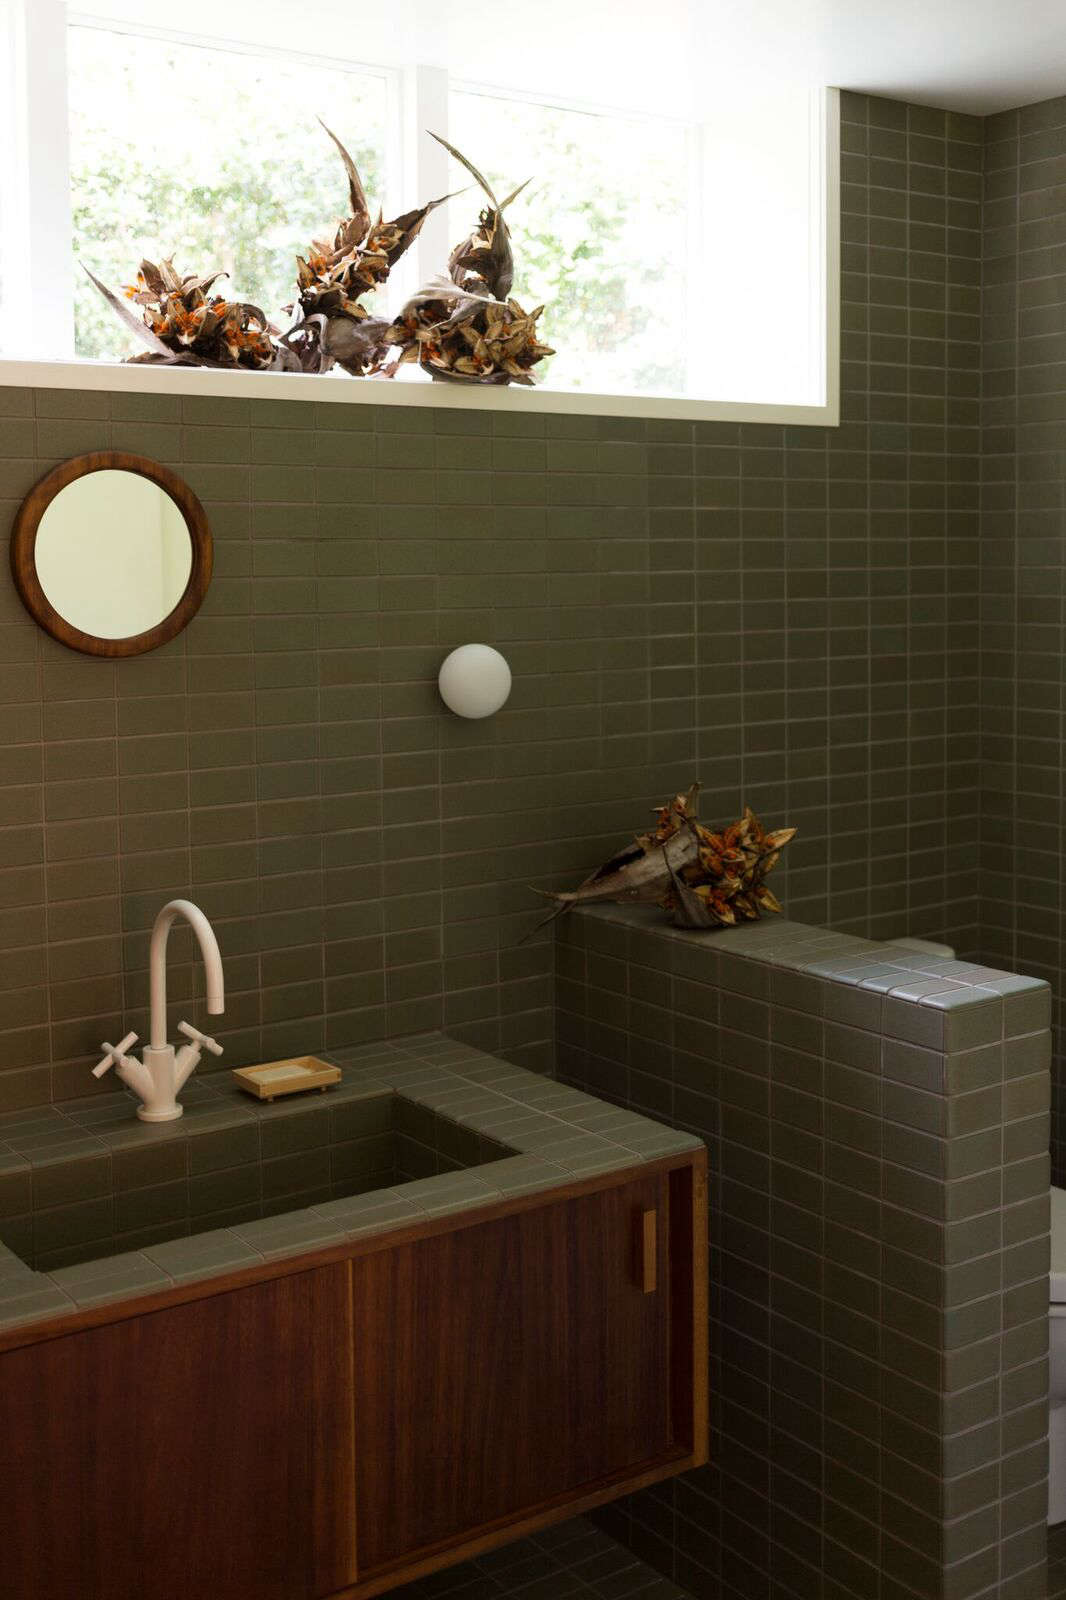 Ceramic Tile Bathroom Bathroom Of The Week Two Bath Remodels With Bold Green Tile In